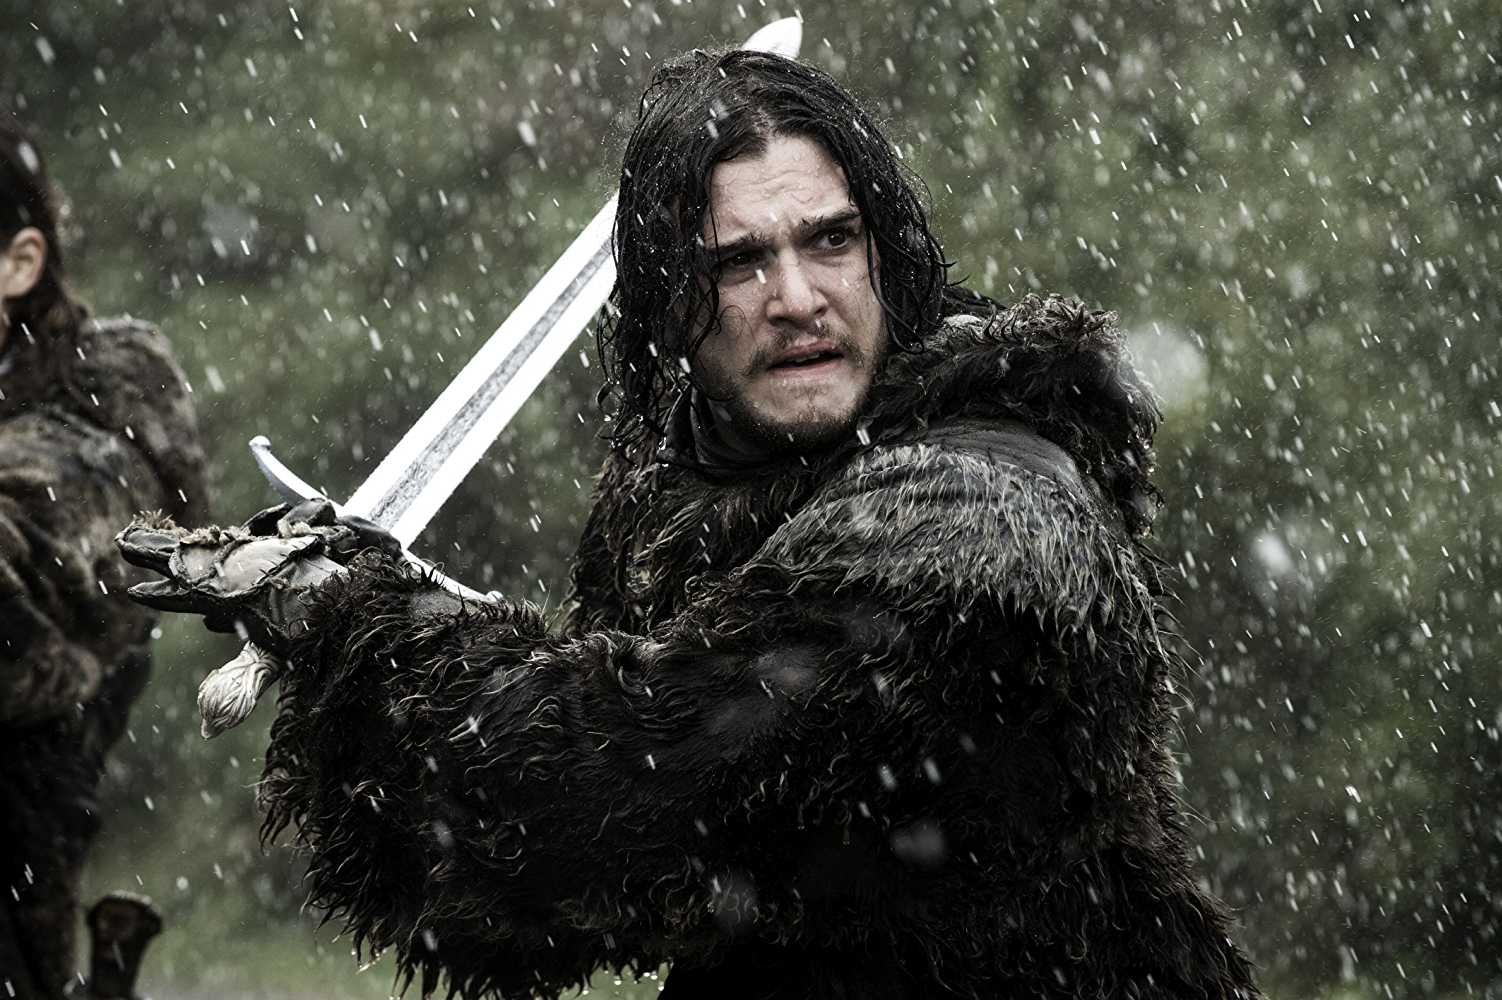 Jon Snow holding his Valyrian steel sword, Longclaw in 'Game of Thrones'. (Source: IMDB)